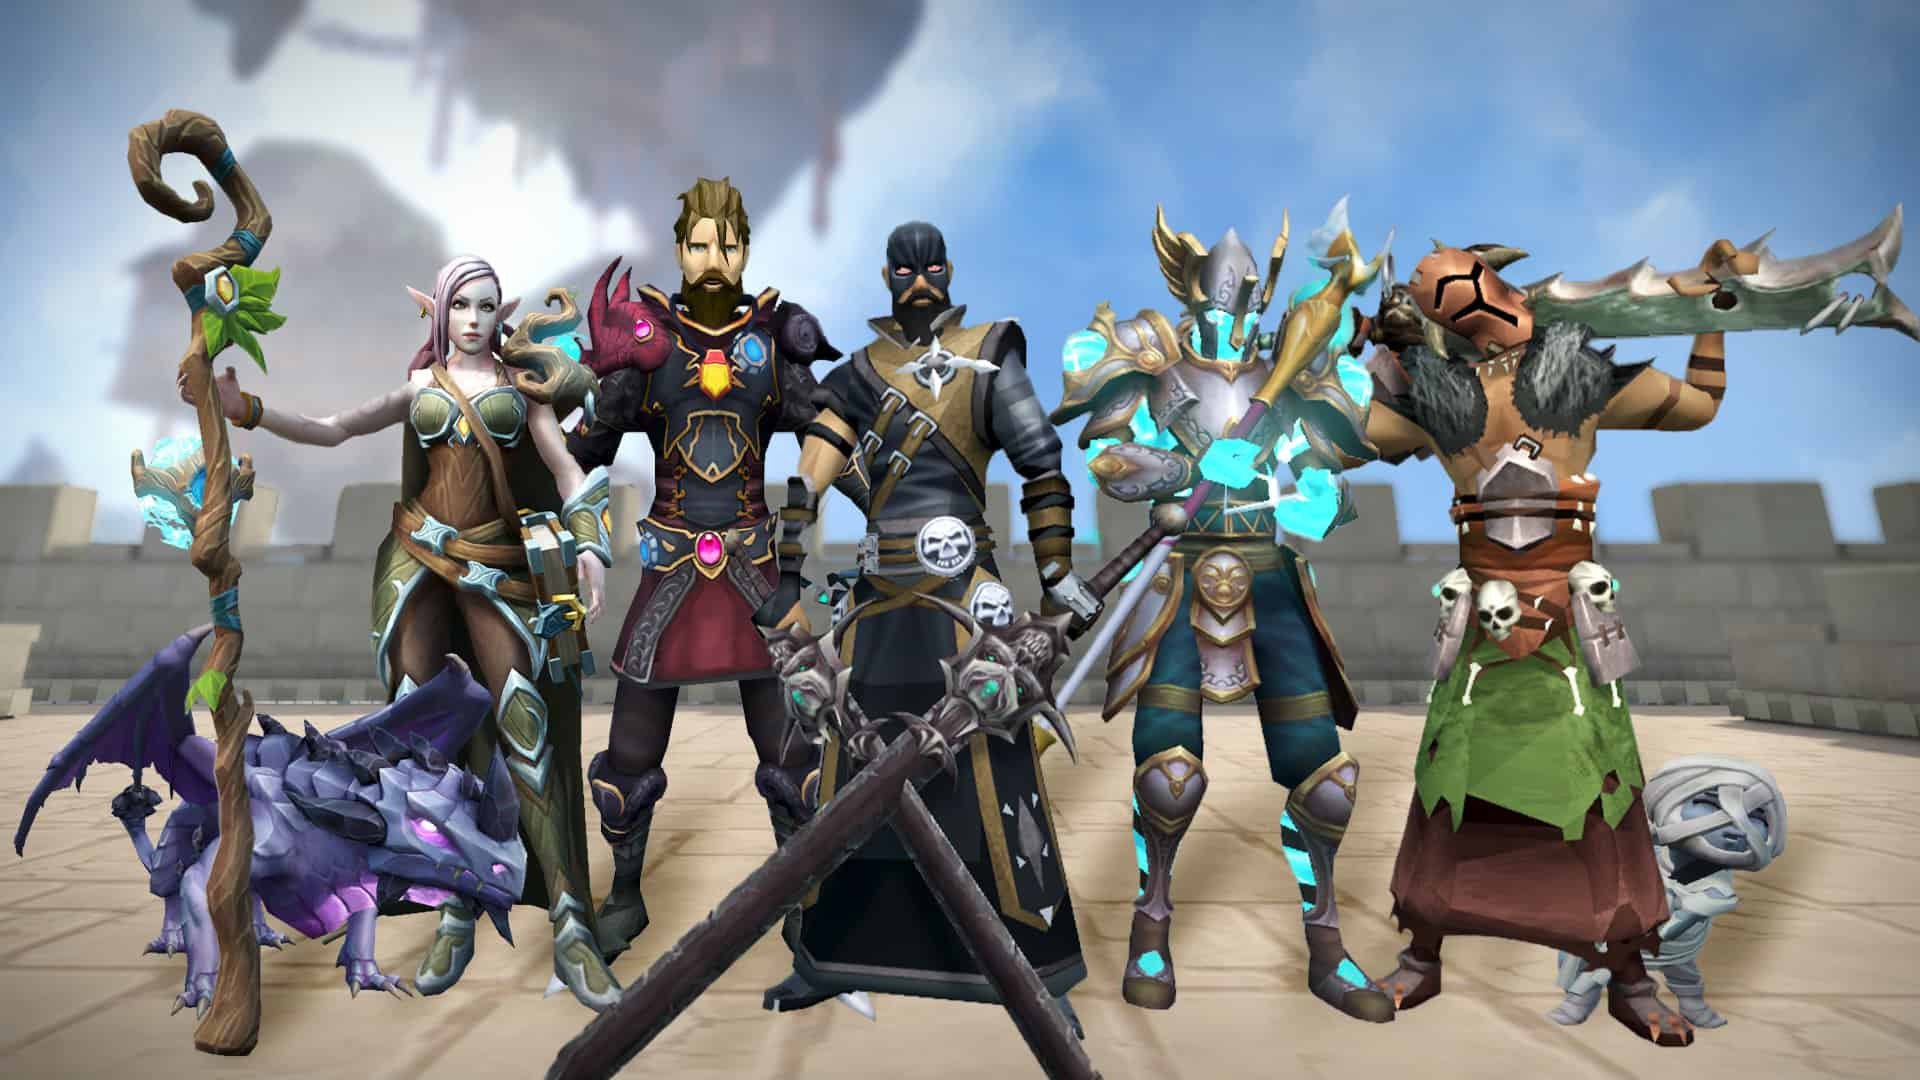 Runescape Delays Updates Again To Finish Restoring Accounts Affected By The Login Lockout 4